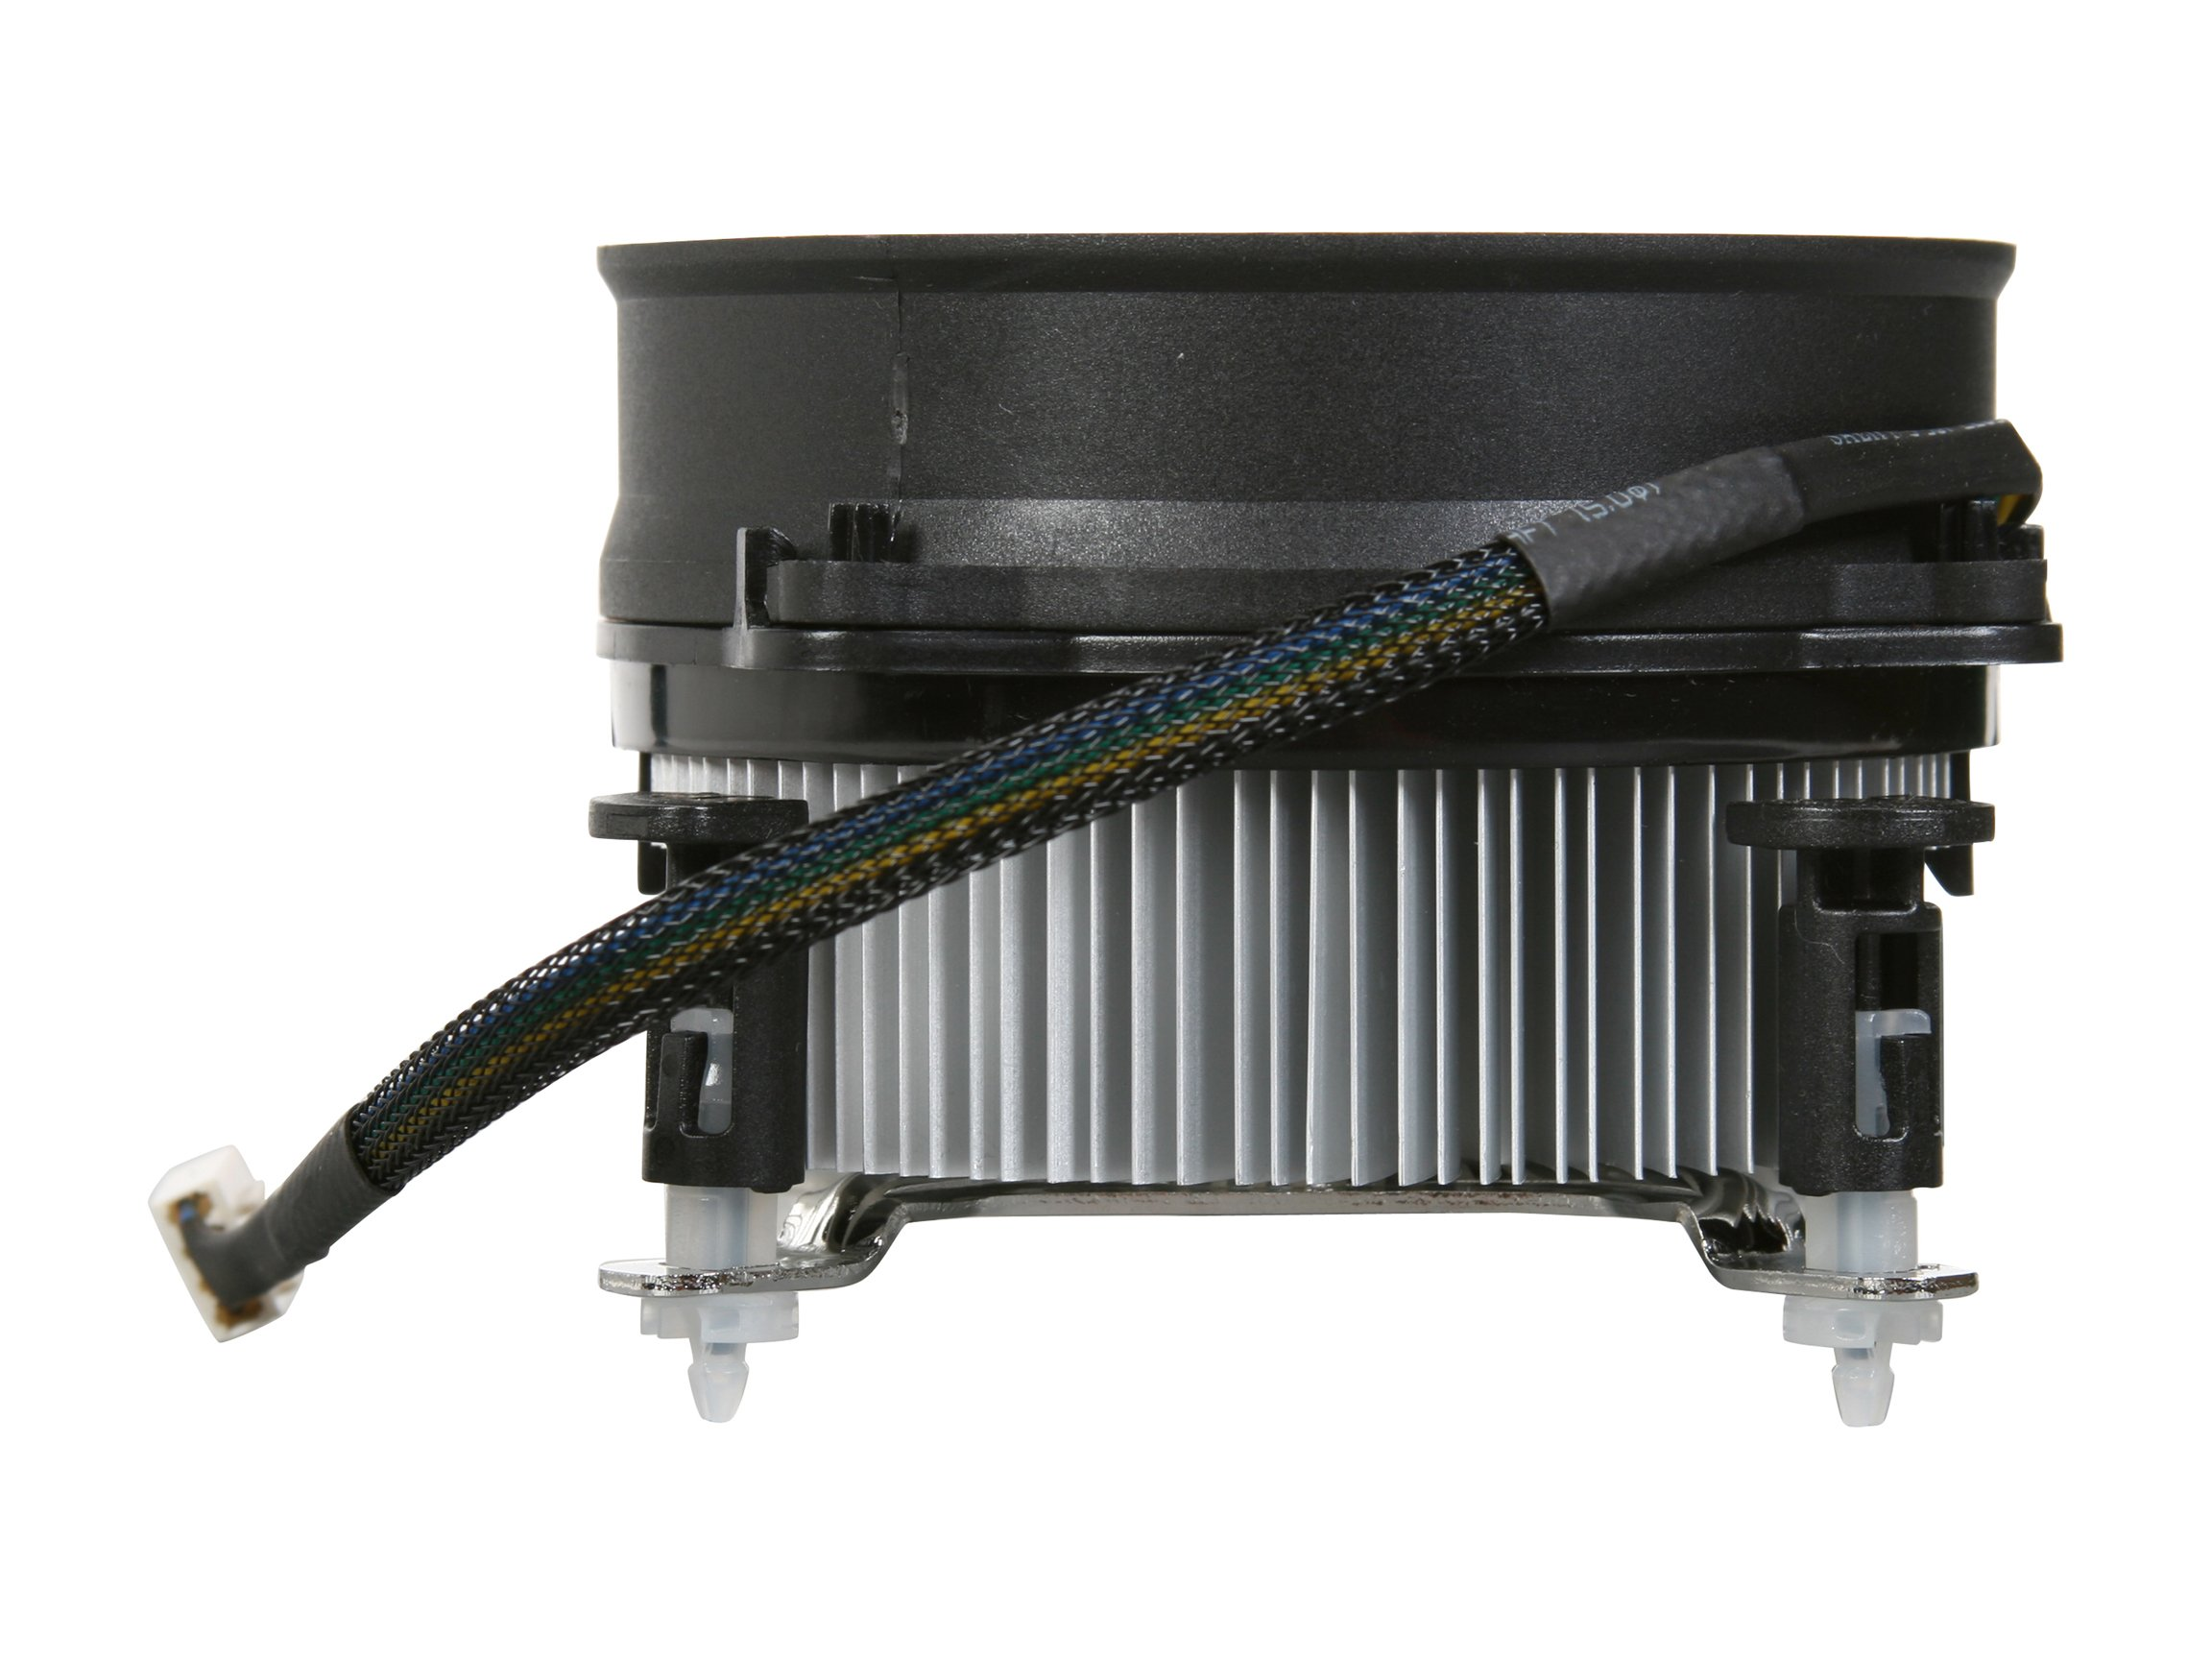 Rosewill RCX-Z90-AL 92mm Sleeve CPU Cooler by Rosewill (Image #4)